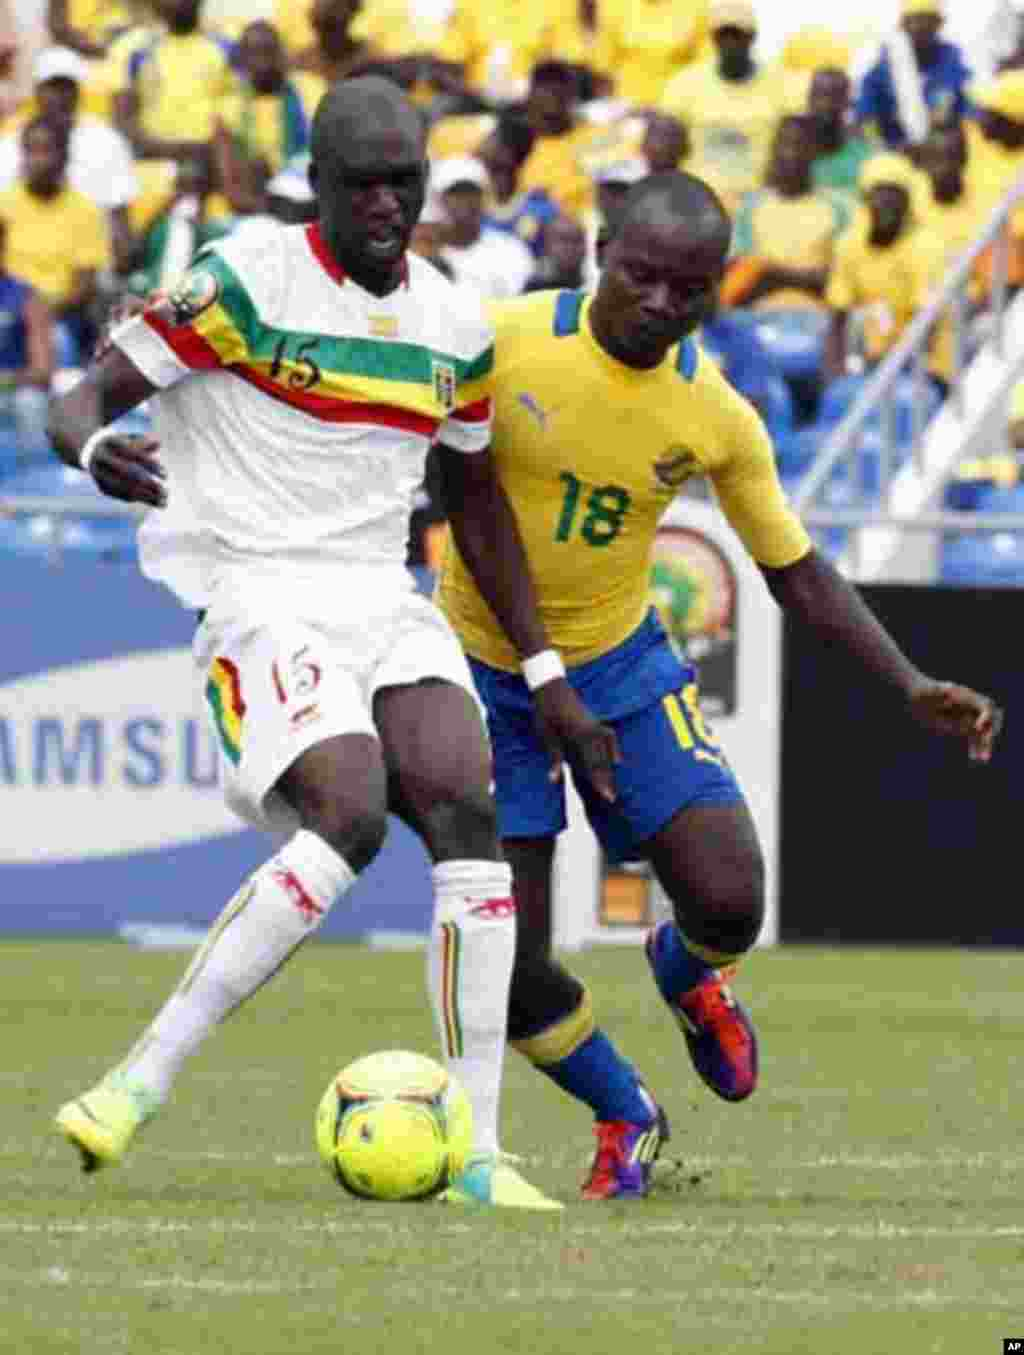 Mali's Bakaye Traore (L) fights for the ball with Gabon's Cedric Moubamba during their African Cup of Nations quarter-final soccer match at the Stade De L'Amitie Stadium in Gabon's capital Libreville, February 5, 2012.